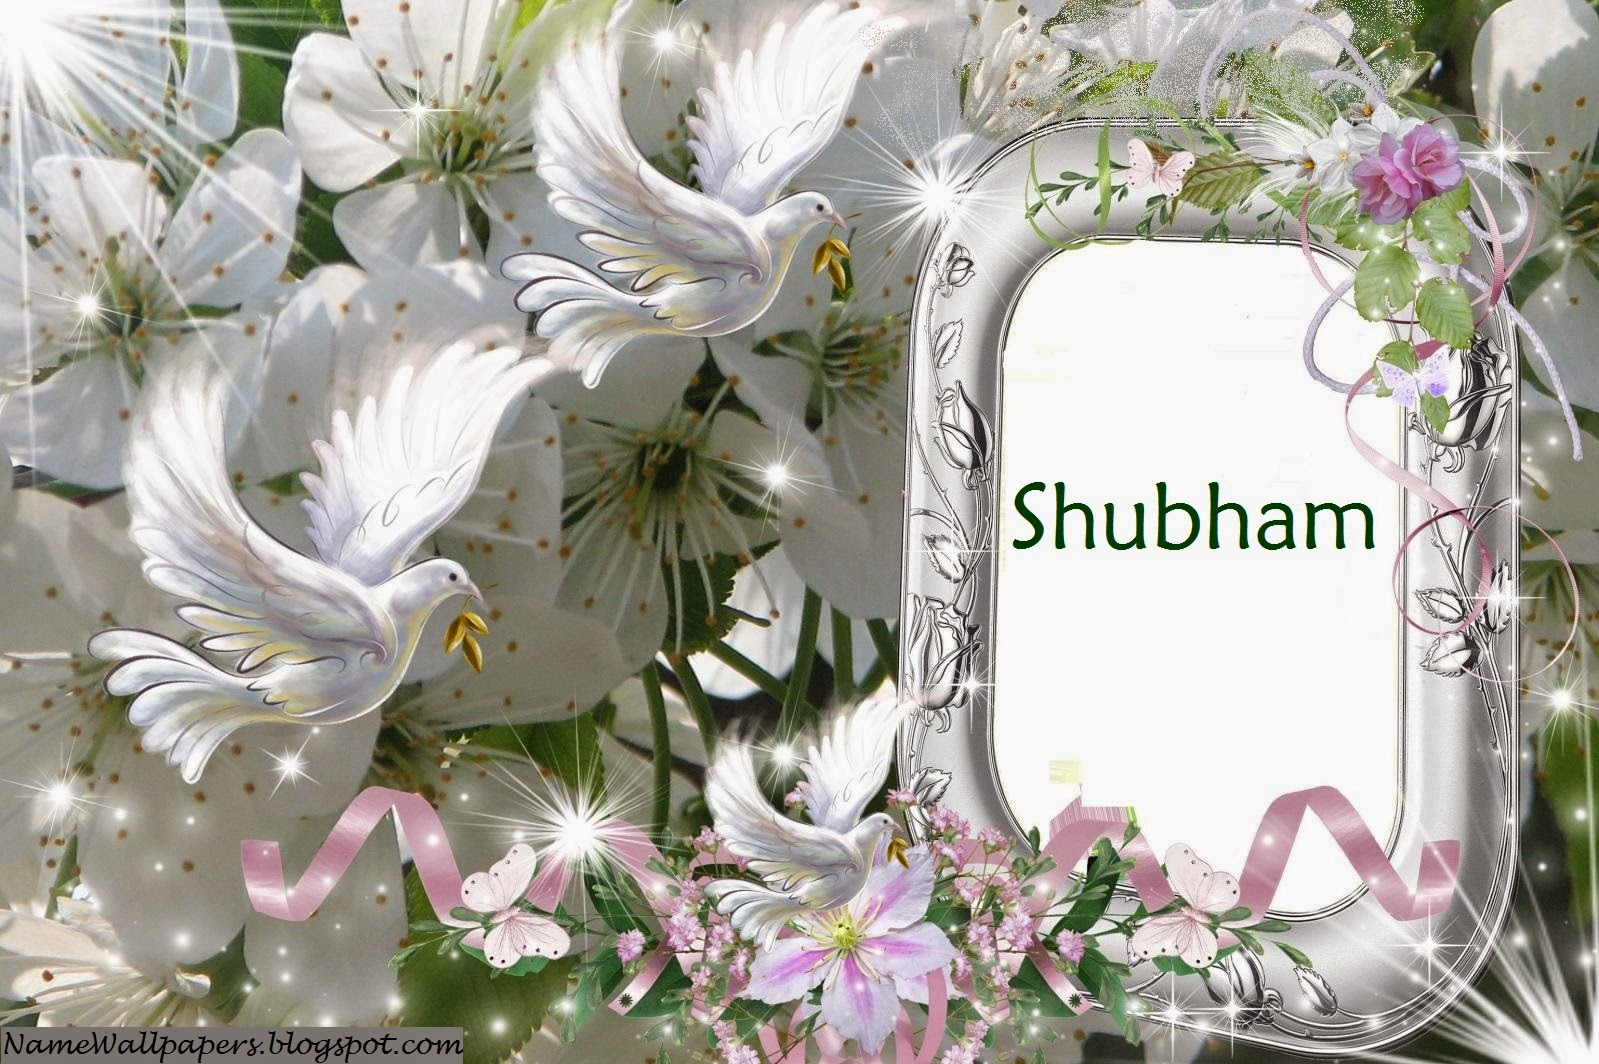 Shubham Name Wallpapers Shubham Name Wallpaper Urdu Name Meaning